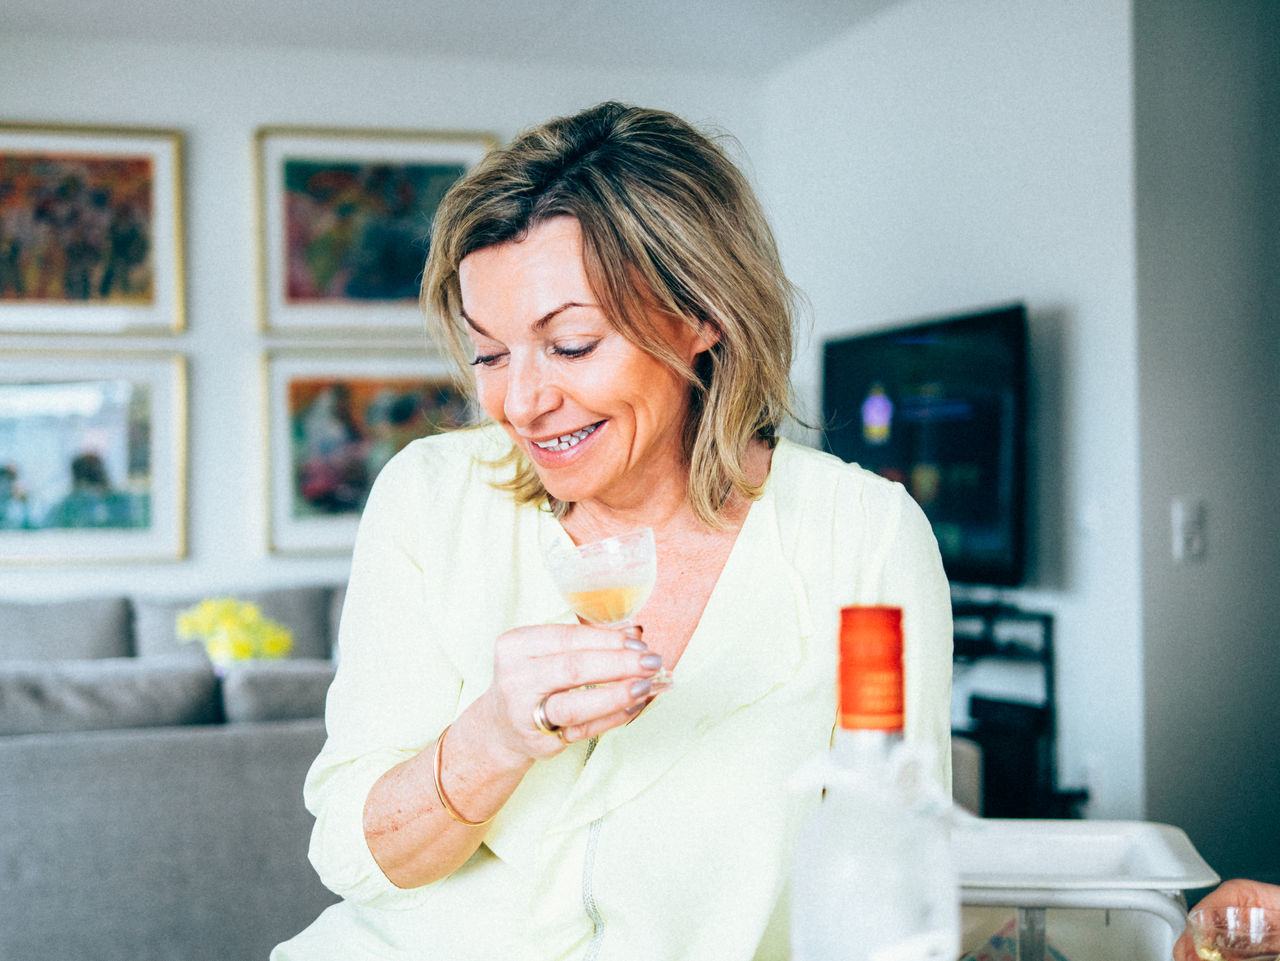 Beautiful stock photos of wein, only women, adults only, smiling, one woman only